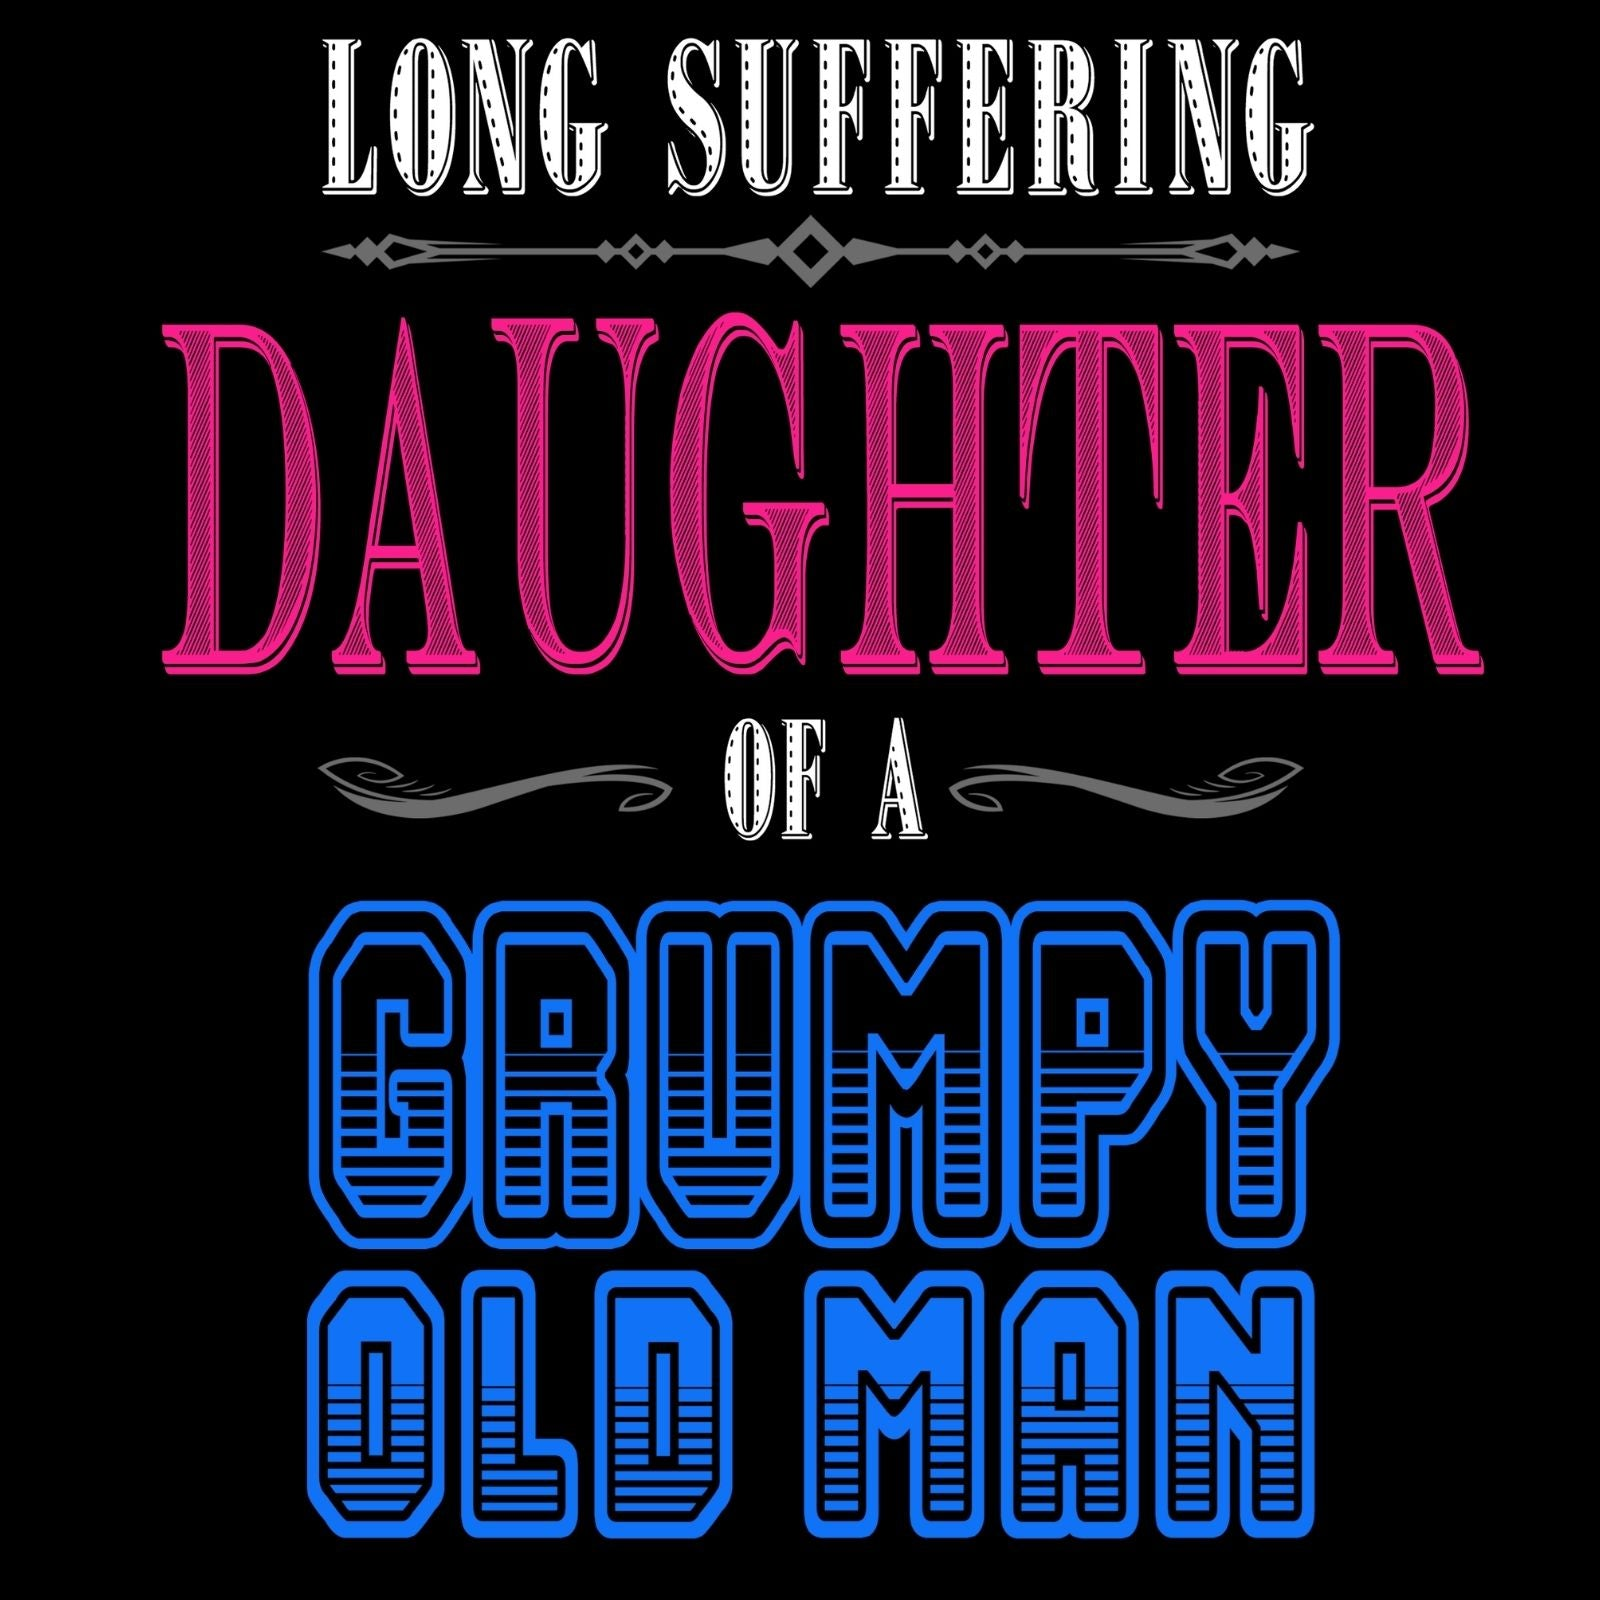 Long Suffering Daughter of A Grumpy Old Man - Bastard Graphics